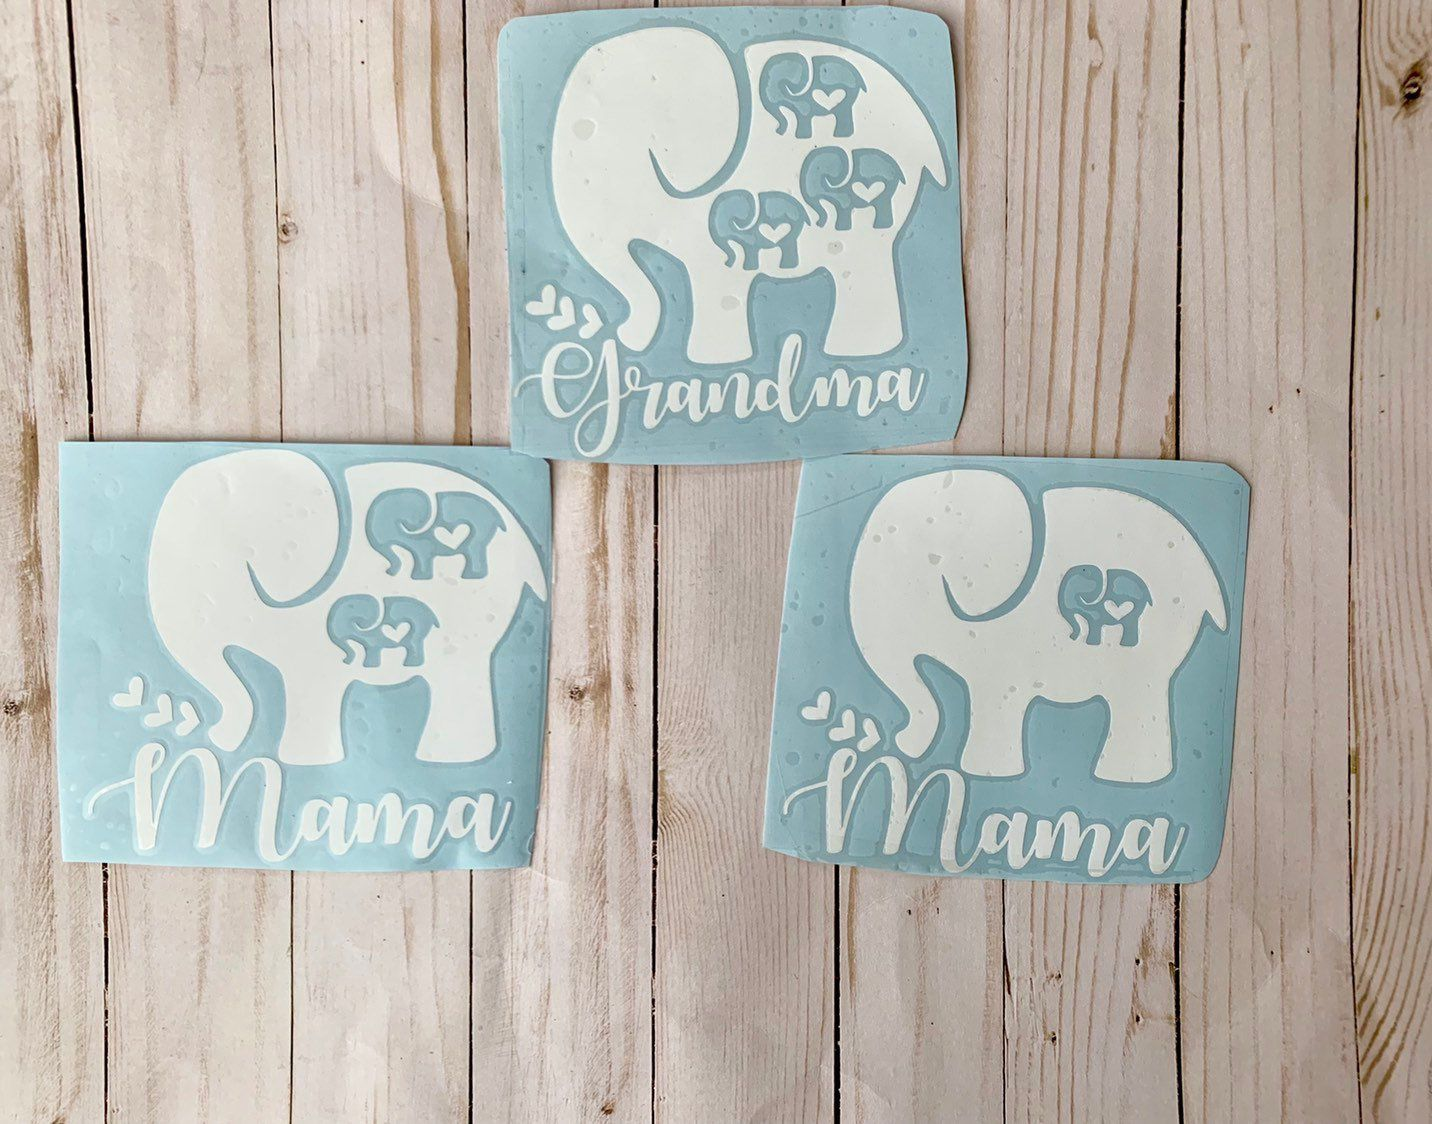 Diy Decal Car Decal Gifts For Grandma Gifts For Mom Car Etsy Elephant Stickers Car Decals Elephant Decal [ 1124 x 1432 Pixel ]